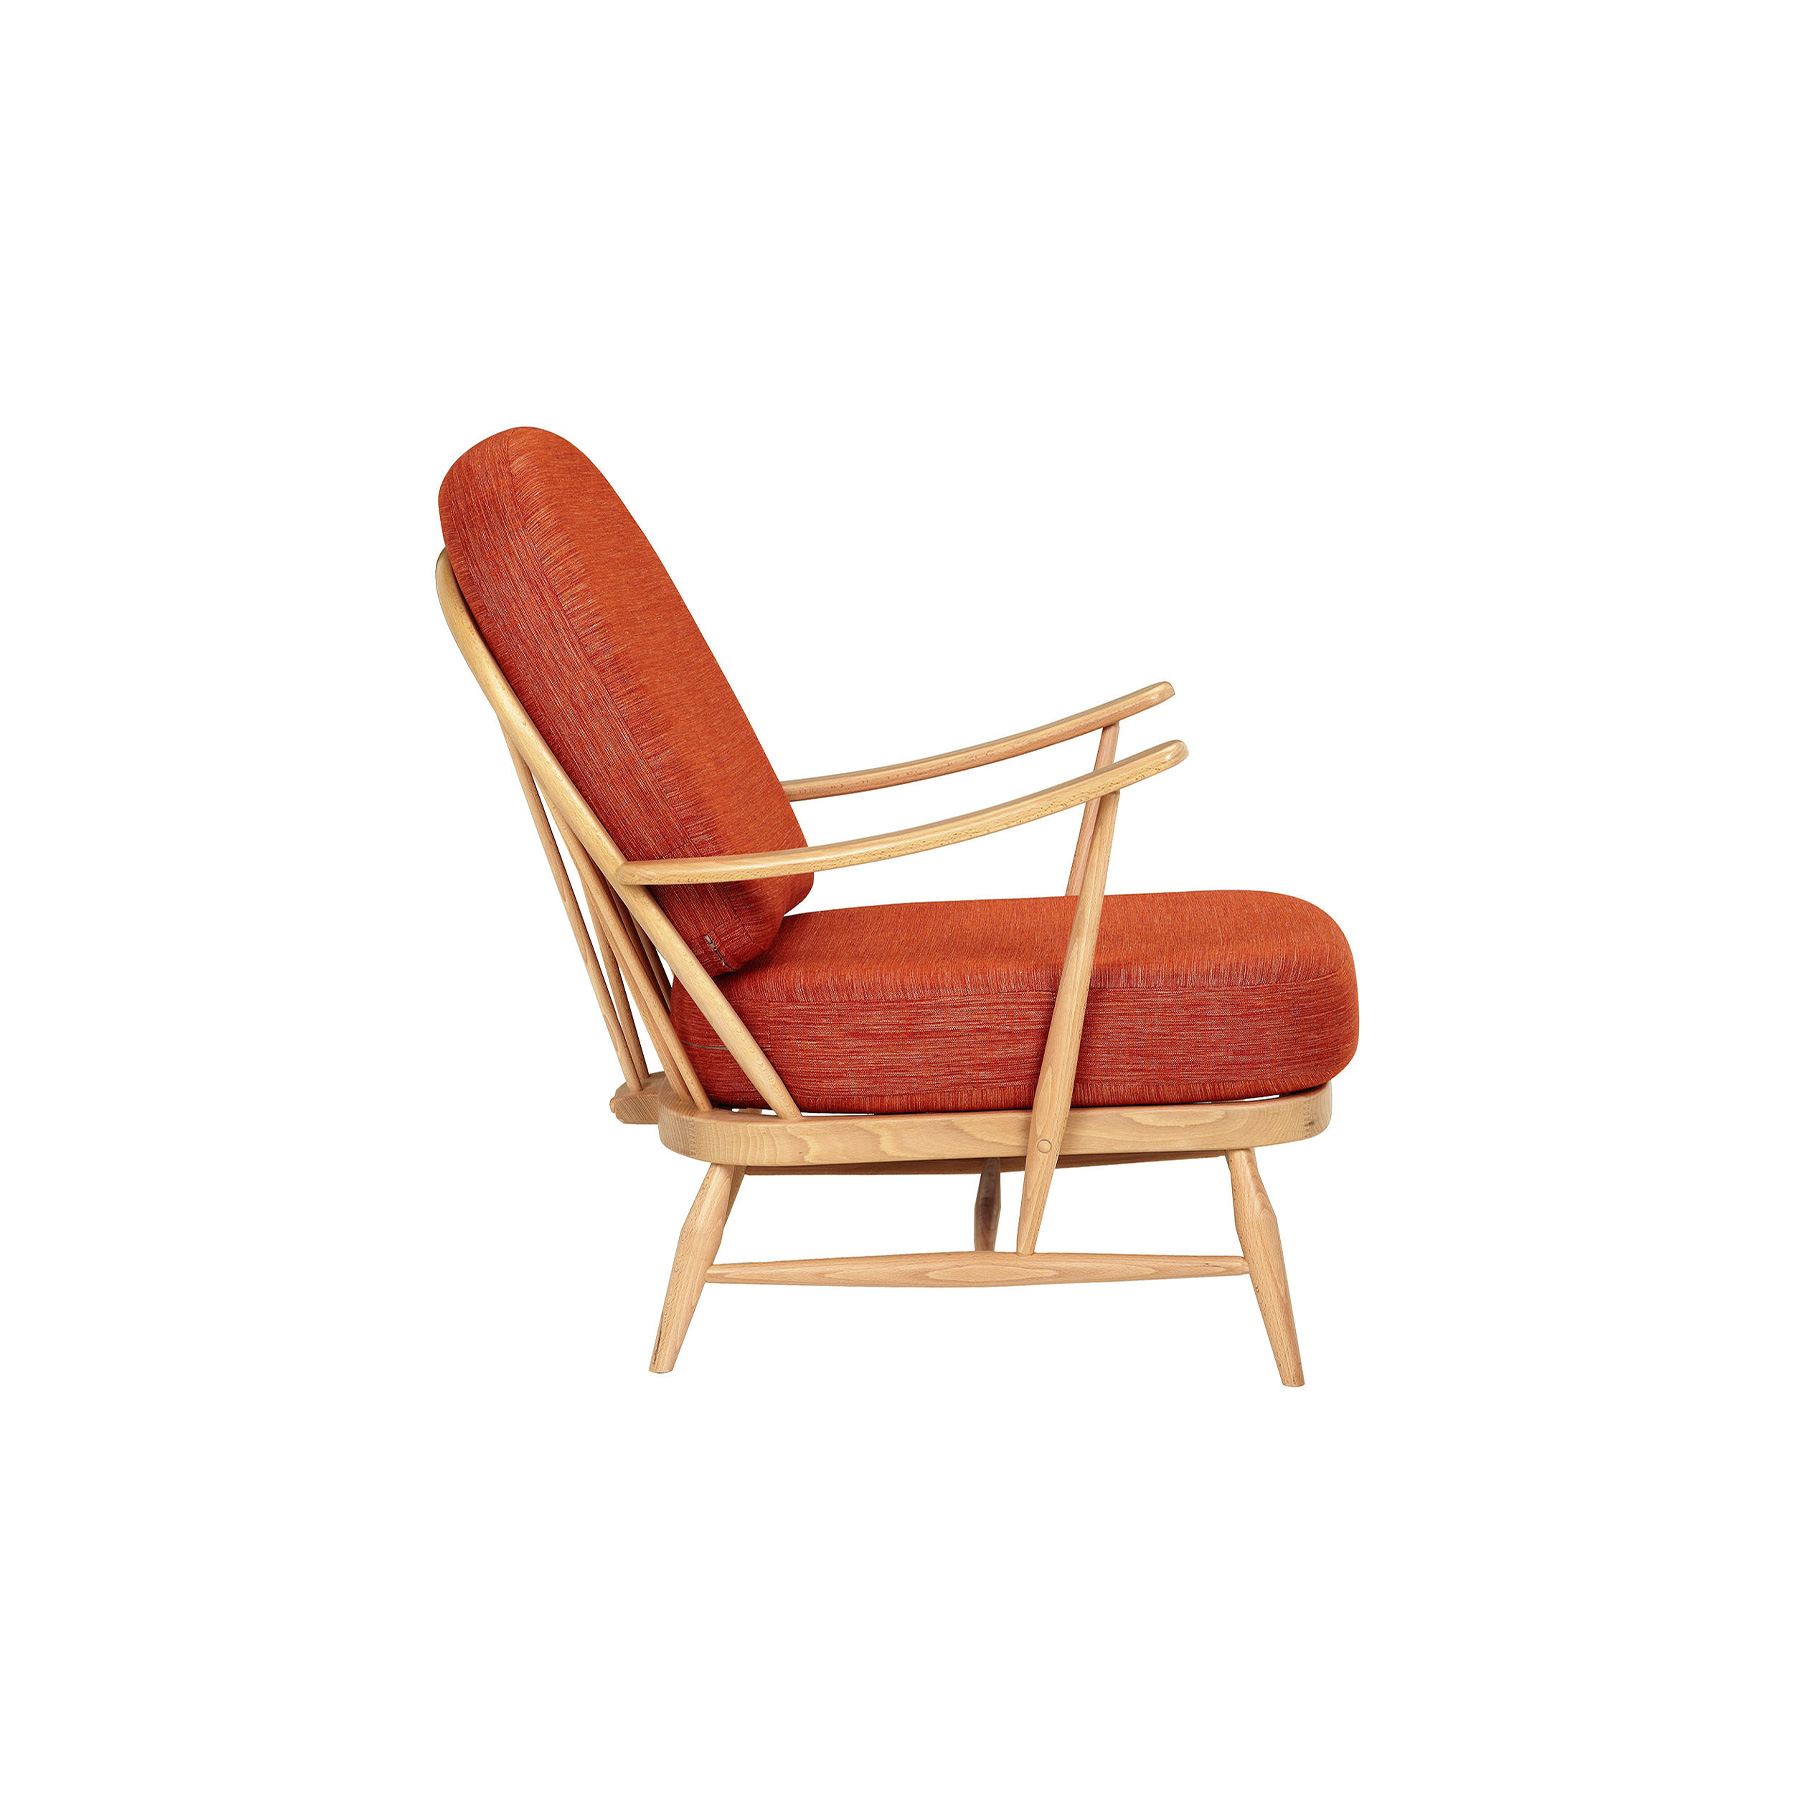 Originals Easy Chair - <p>The Ercol Originals are pieces of timeless and classic design that never date or show their age. It is furniture that is as relevant and as functional now as it was when it was created in the 1950s and 1960s. This furniture was designed by Ercol's founder, Lucian Ercolani, who drew for his inspiration on the time-proven local design and craft in the Chiltern Hills around where he lived and built his first factory in 1920 in High Wycombe. Using the strength of beech and the beauty of elm he carried this definition on into a huge variety of dining, kitchen, and school chairs and then extended the idiom into the low easy chair range epitomised by the 206 armchair and the studio couch. The beauty of the colour and the grain of the elm took Lucian on to use elm for the tables and cabinets of the Originals and the following Windsor range. Part of the ercol Originals range, this compact occasional Easy chair comprises a traditional steam-bent frame, with turned spindles and a distinctive arch back. The foam seat and back cushions provide a comfortable and supportive sit. Rubberised webbing at the base of the armchair provides extra support. Wooden legs taper down from the frame in keeping with the Windsor style of this chair. This furniture can be selected in a range of colours and finishes and bespoke colouration is available on project orders over a certain quantity.</p>  | Matter of Stuff